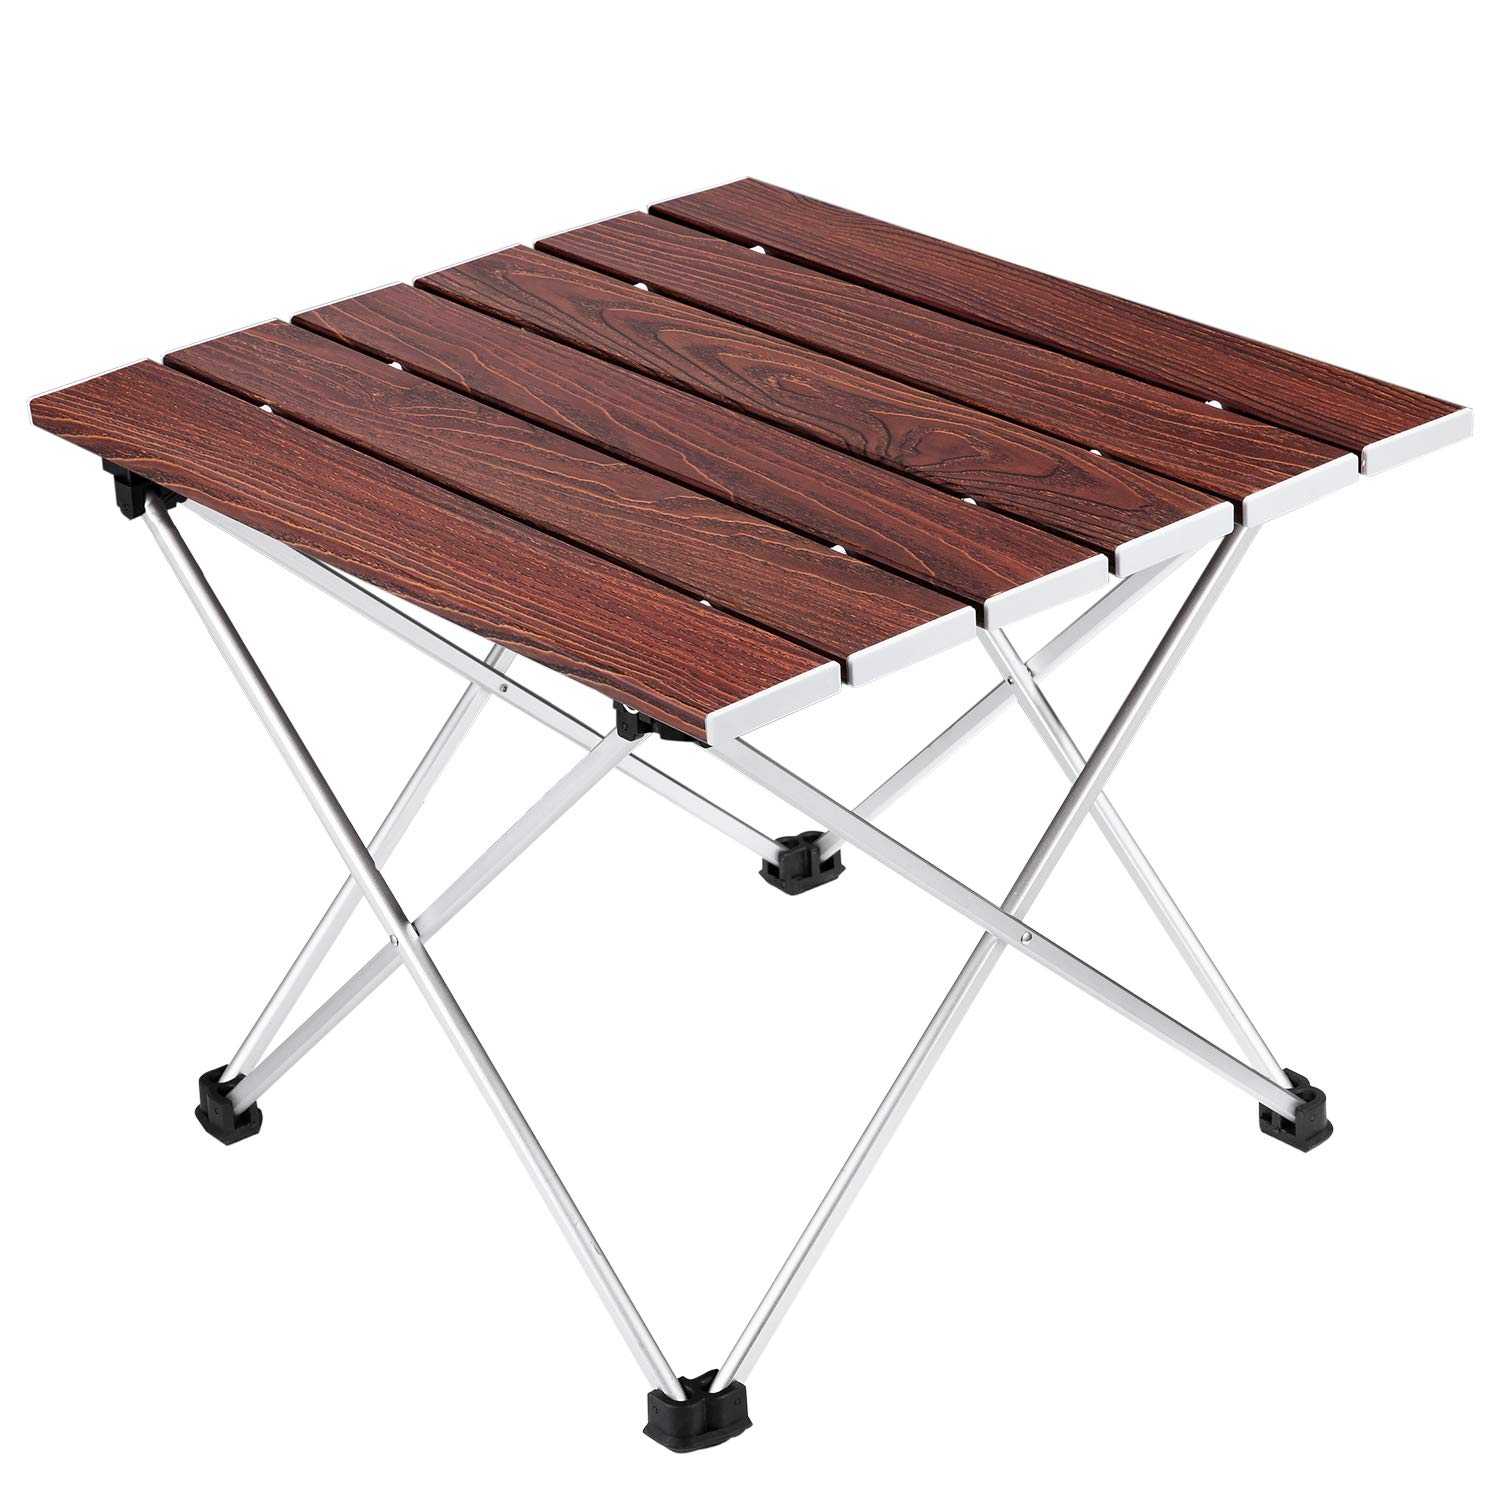 Ledeak Camping Folding Table, Portable Lightweight Foldable Compact Small Roll up Table with Carry Bag, Perfect for Outdoor, Camping, Picnic, Beach, Hiking, Easy to Install Clean